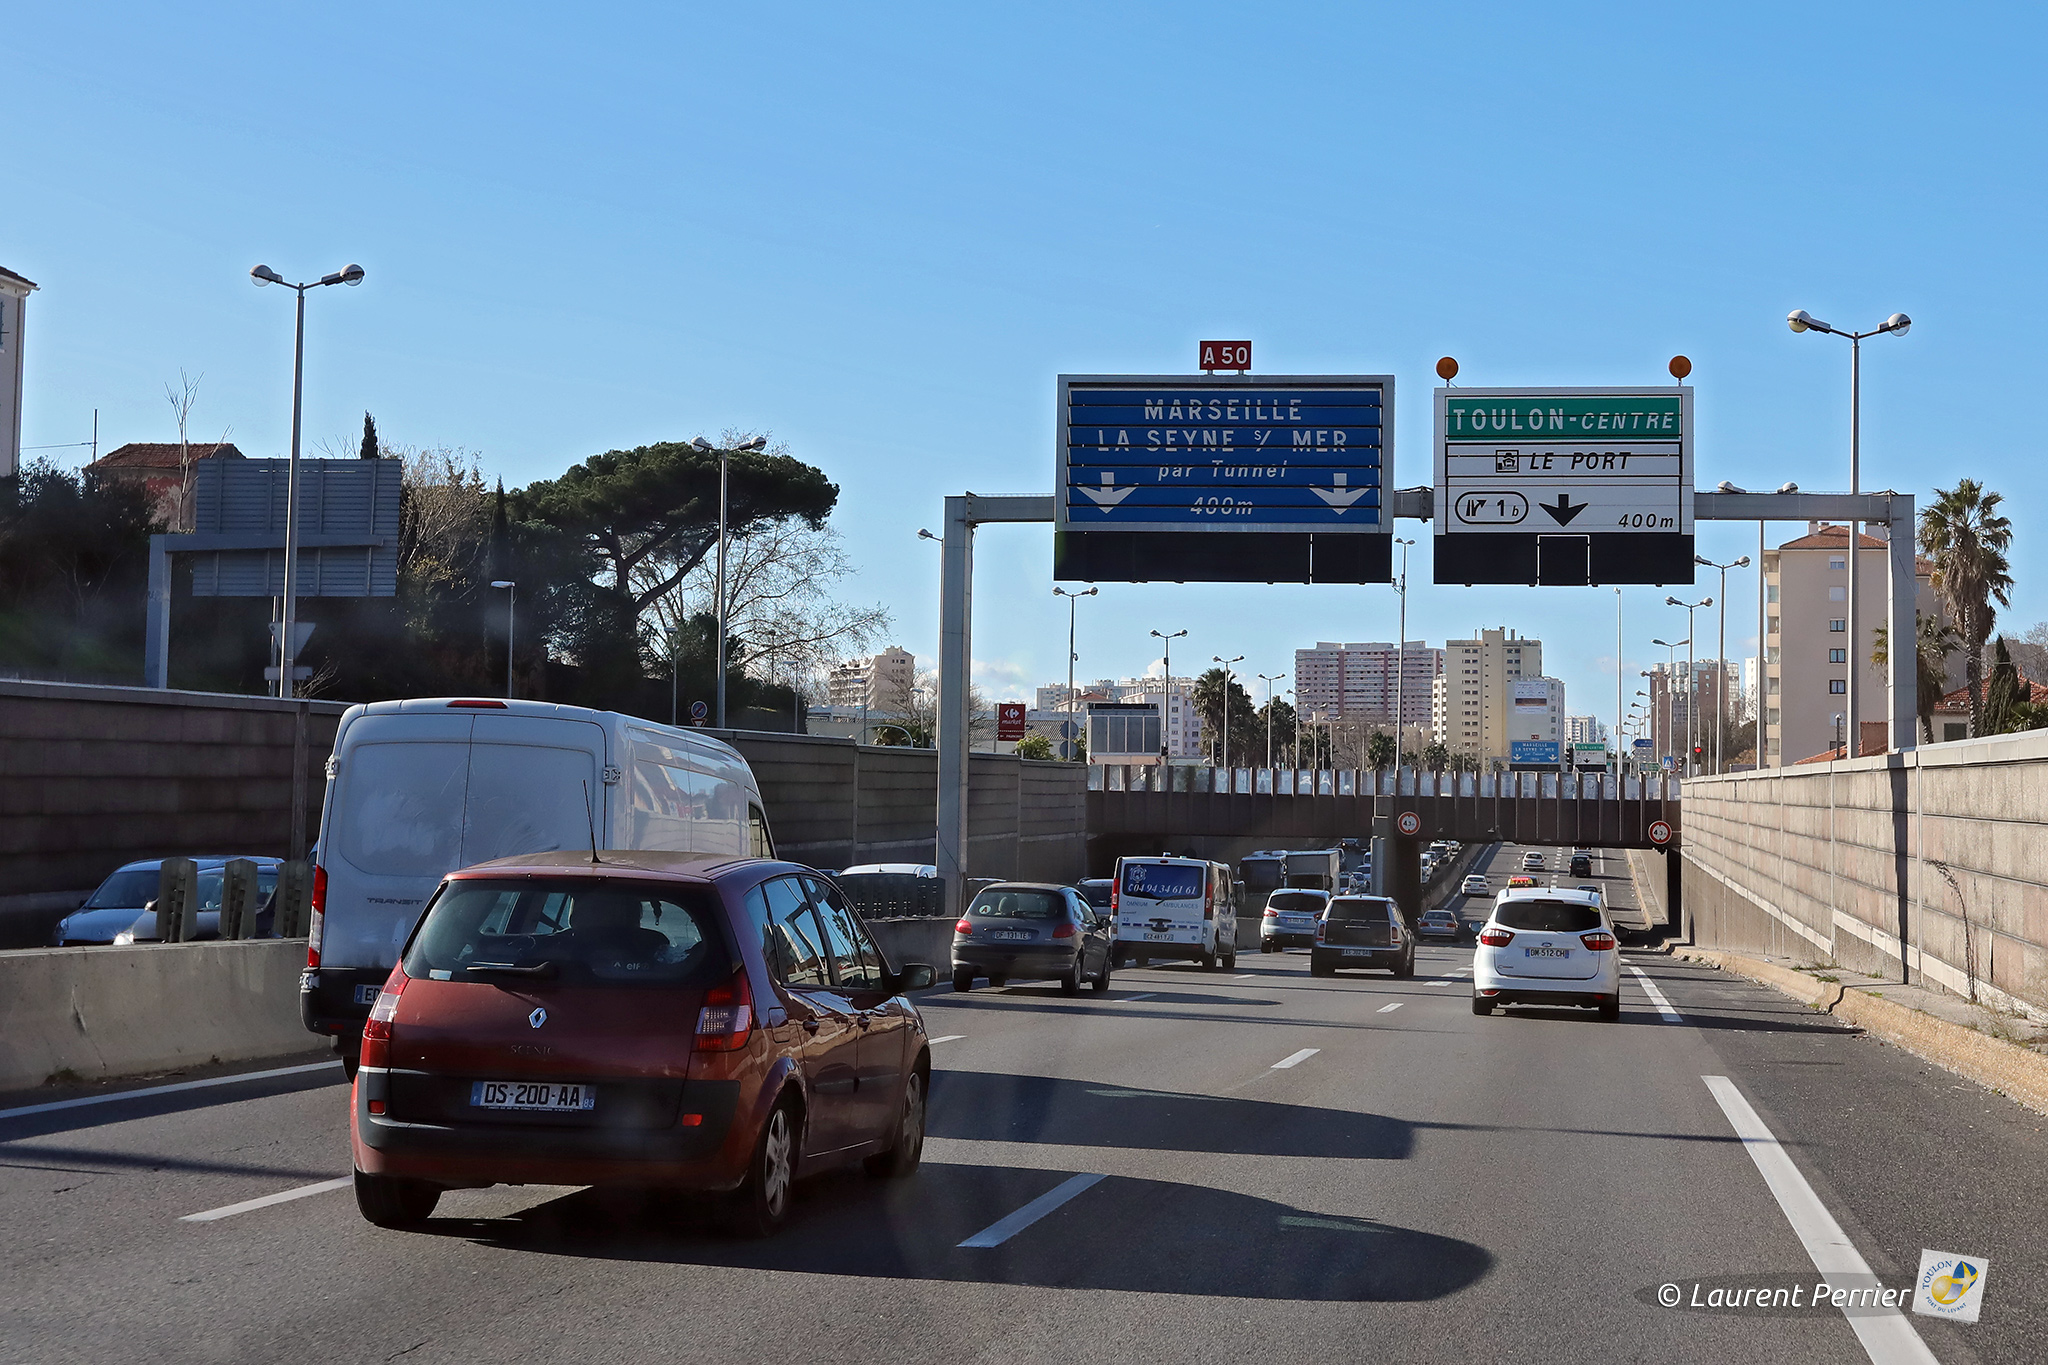 Bus Toulon Marseille Liaisons Routières Site Officiel De La Ville De Toulon